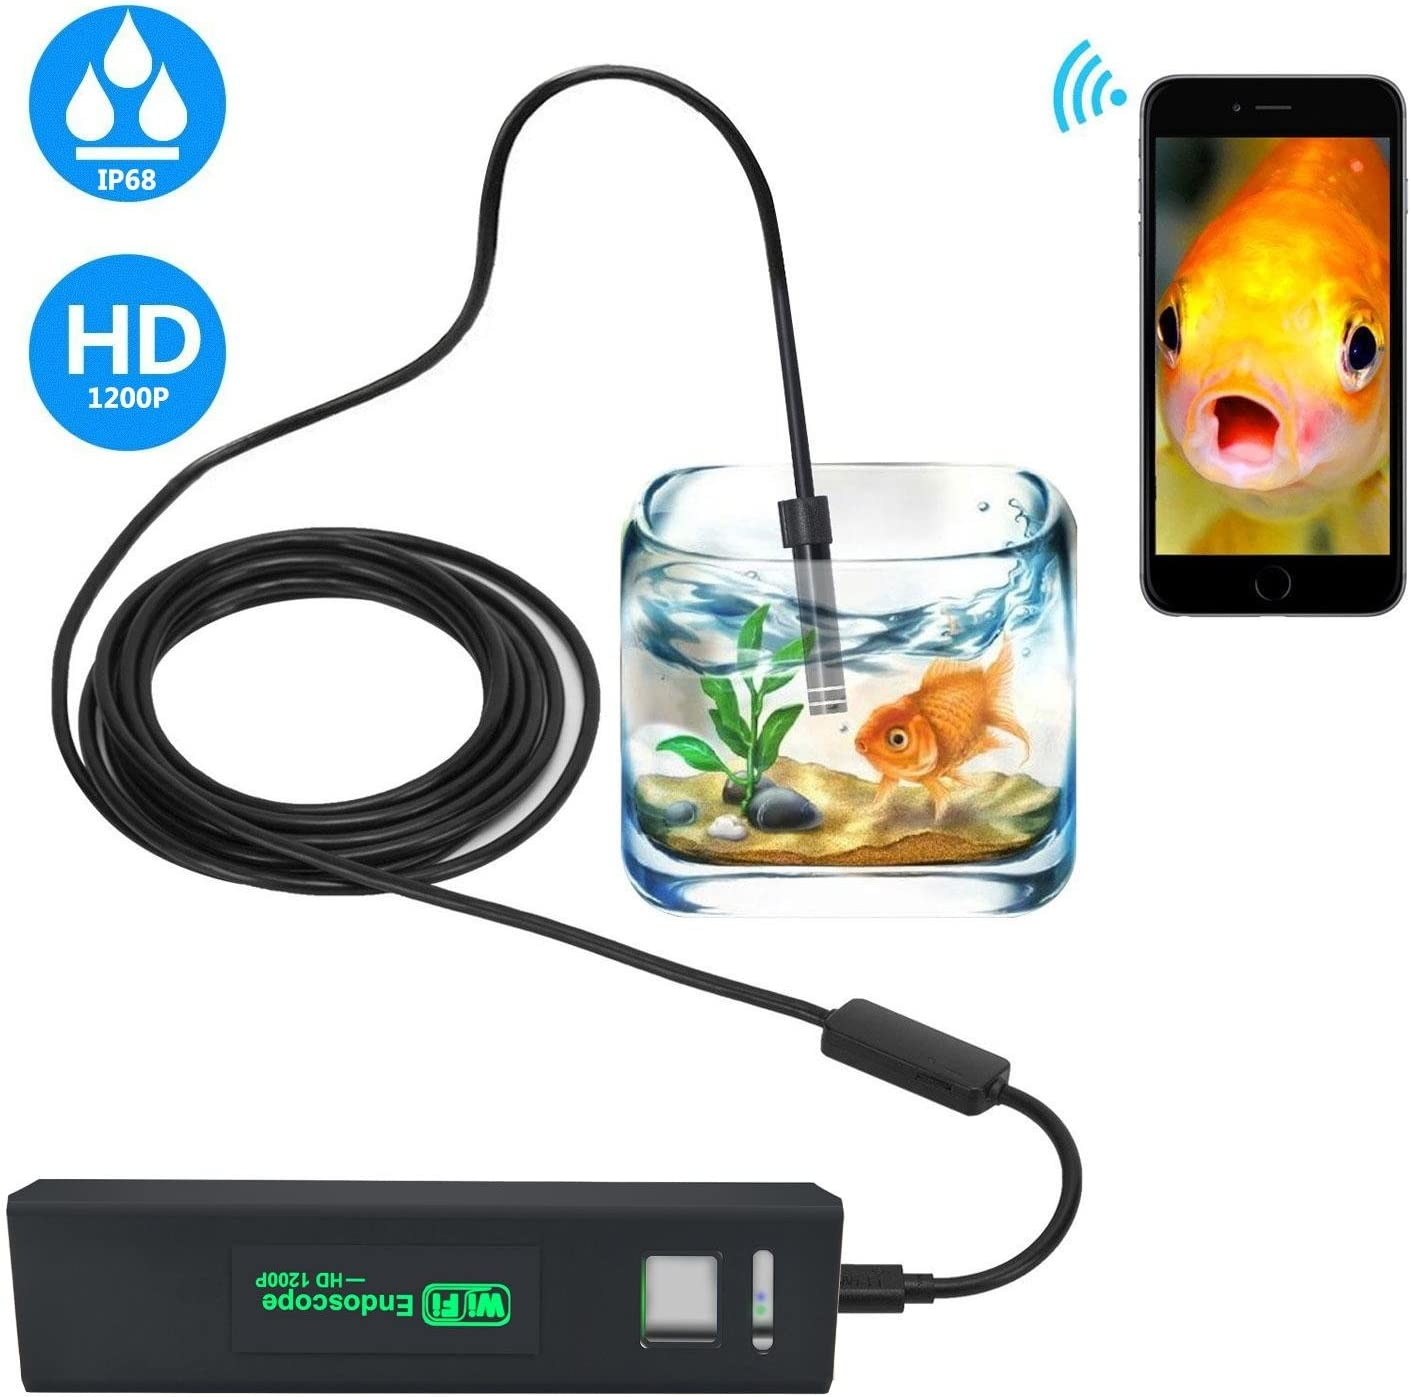 PC KOBWA WiFi Borescope Inspection Camera 2.0 Megapixels HD 8 LED Light Snake Camera for Android and IOS Smartphone Samsung Waterproof Wireless Endoscope IPhone Tablet